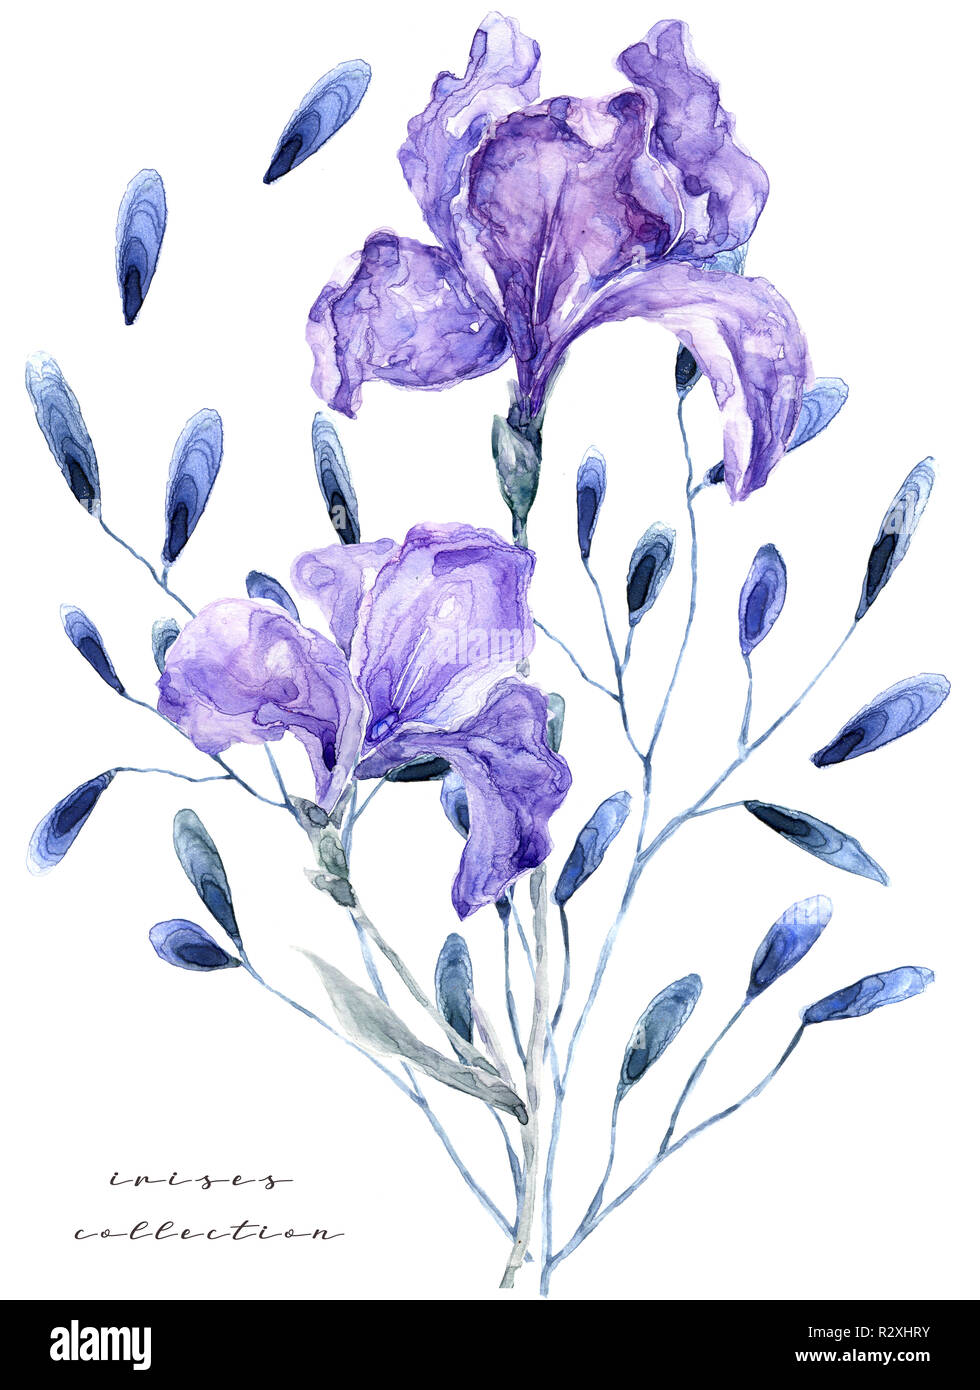 Watercolor Illustration With Iris Painting Fresh Flowers On White